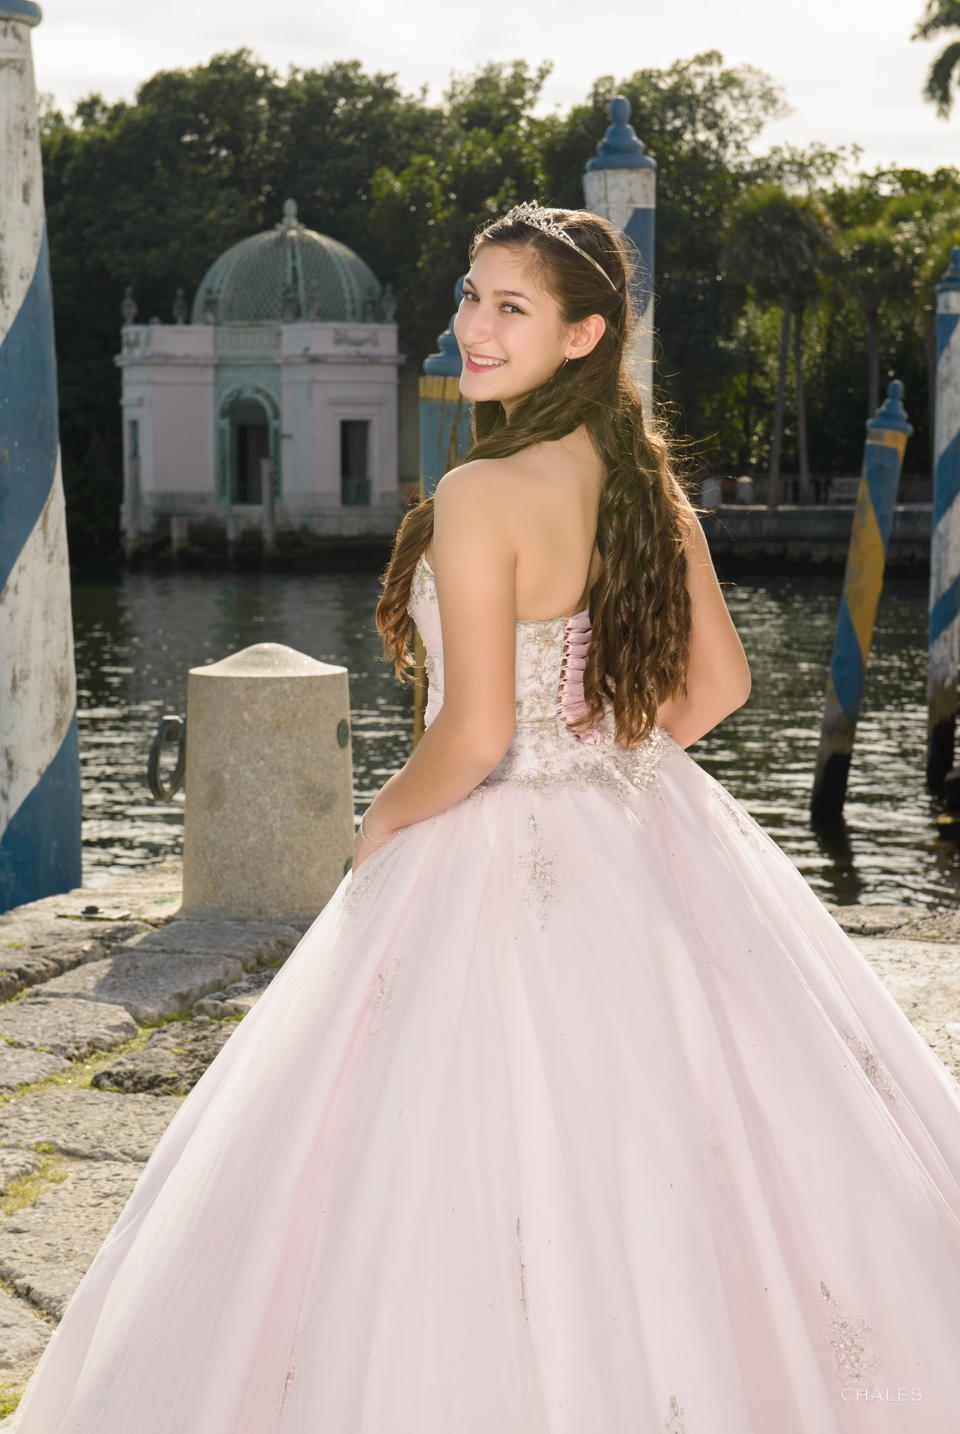 Miami Quinces Photos